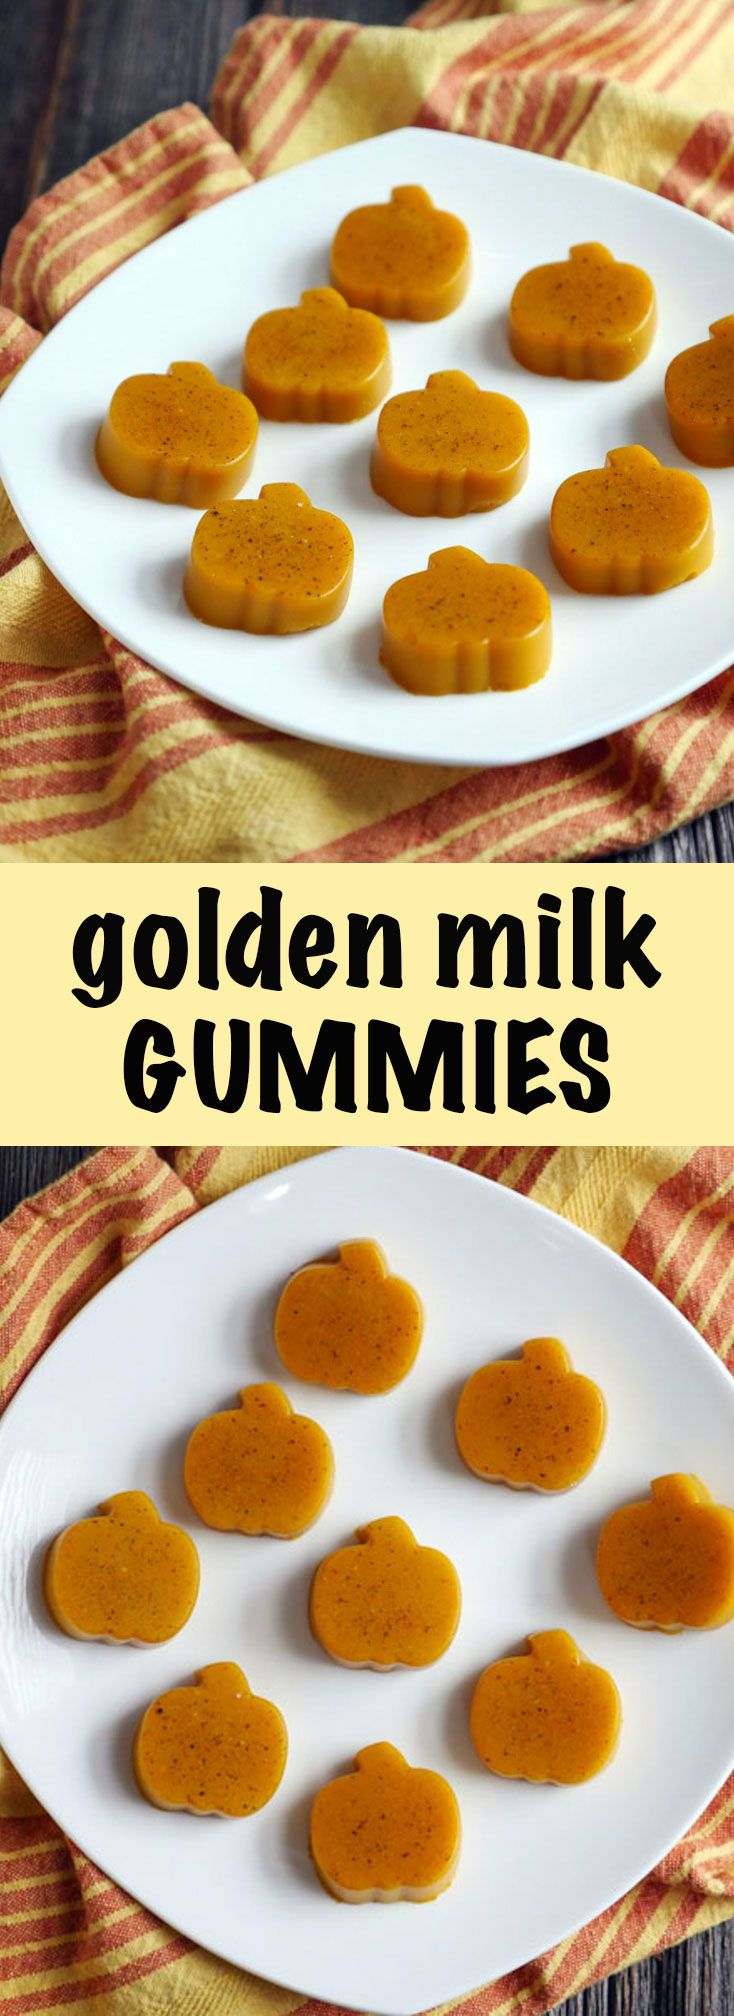 A great way to get your golden milk this flu season without having to drink loads of the stuff. Even my picky hubby likes these! Recipe on myheartbeets.com